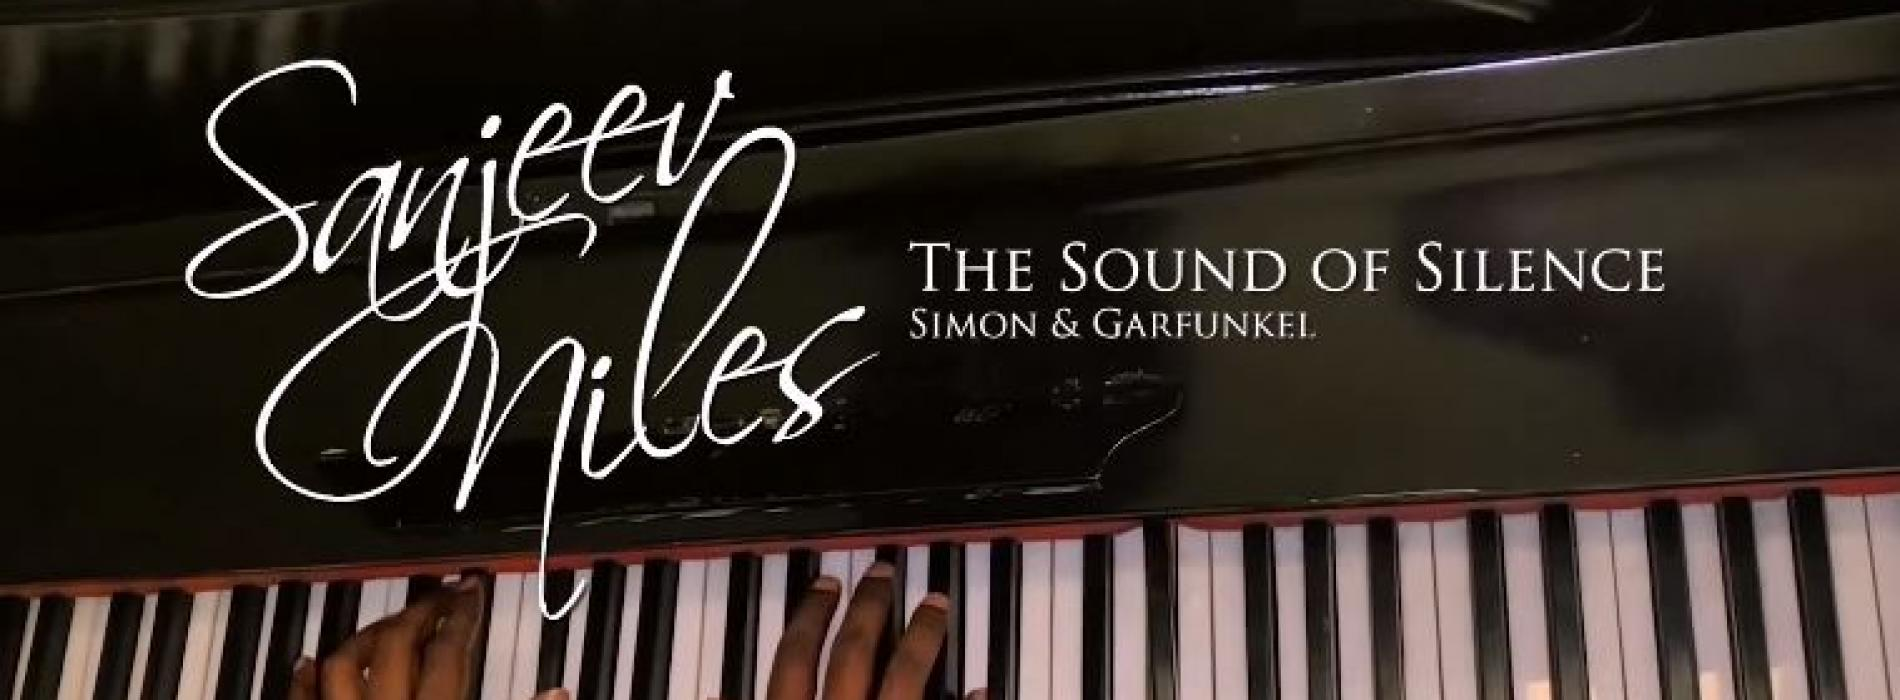 New Music : The Sound Of Silence (Disturbed Cover) – Live Performance Video By Sanjeev Niles